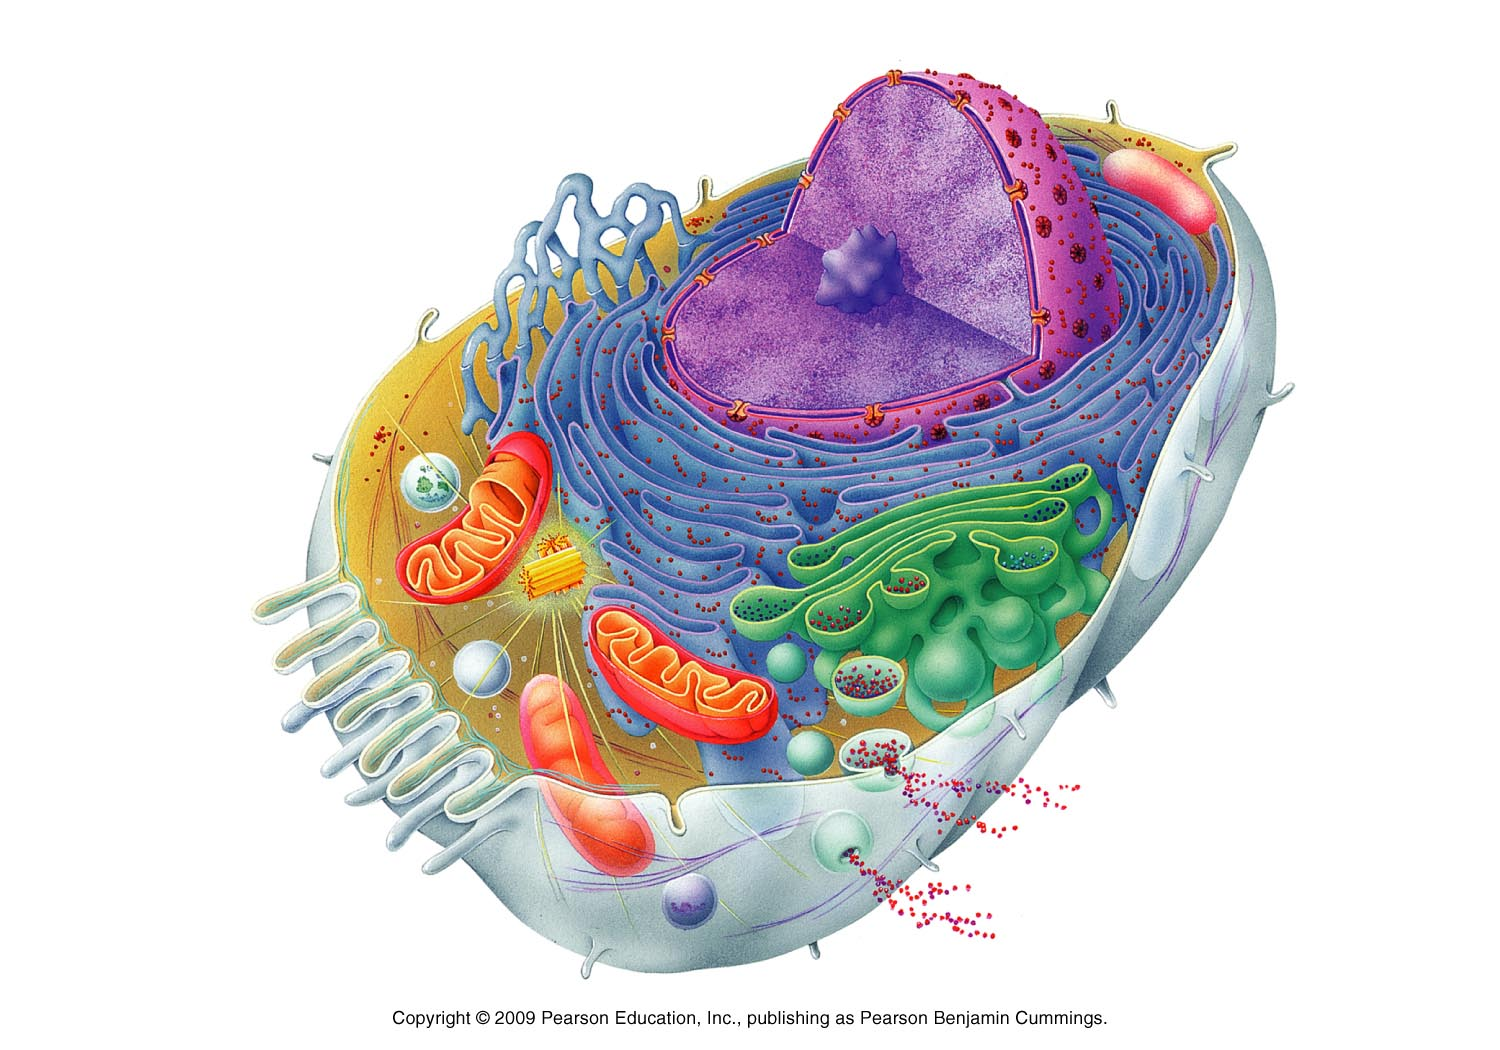 Fein anatomy of a animal cell zeitgenssisch menschliche anatomie animal cells publicscrutiny Image collections